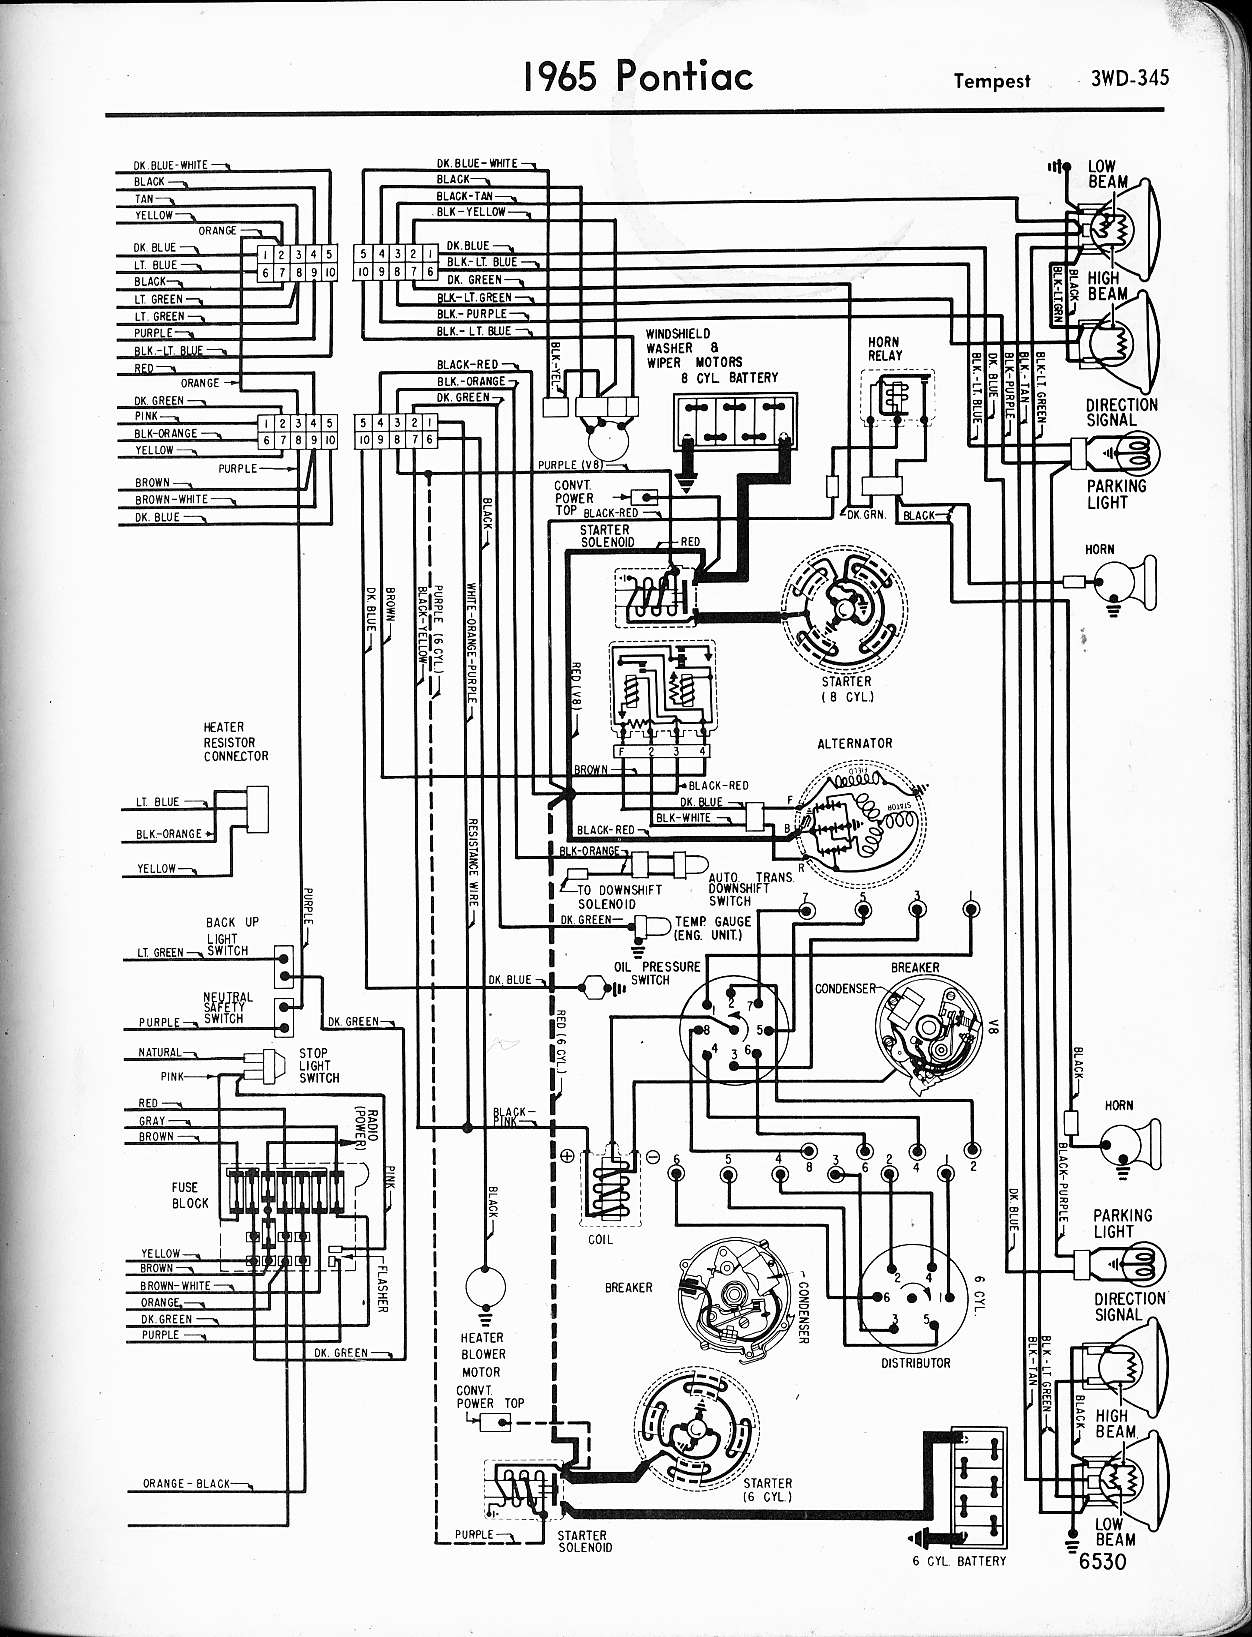 1965 Gto Wiring Diagram Schematics Diagrams 1968 Jaguar Xke Schematic Wallace Racing Rh Wallaceracing Com 65